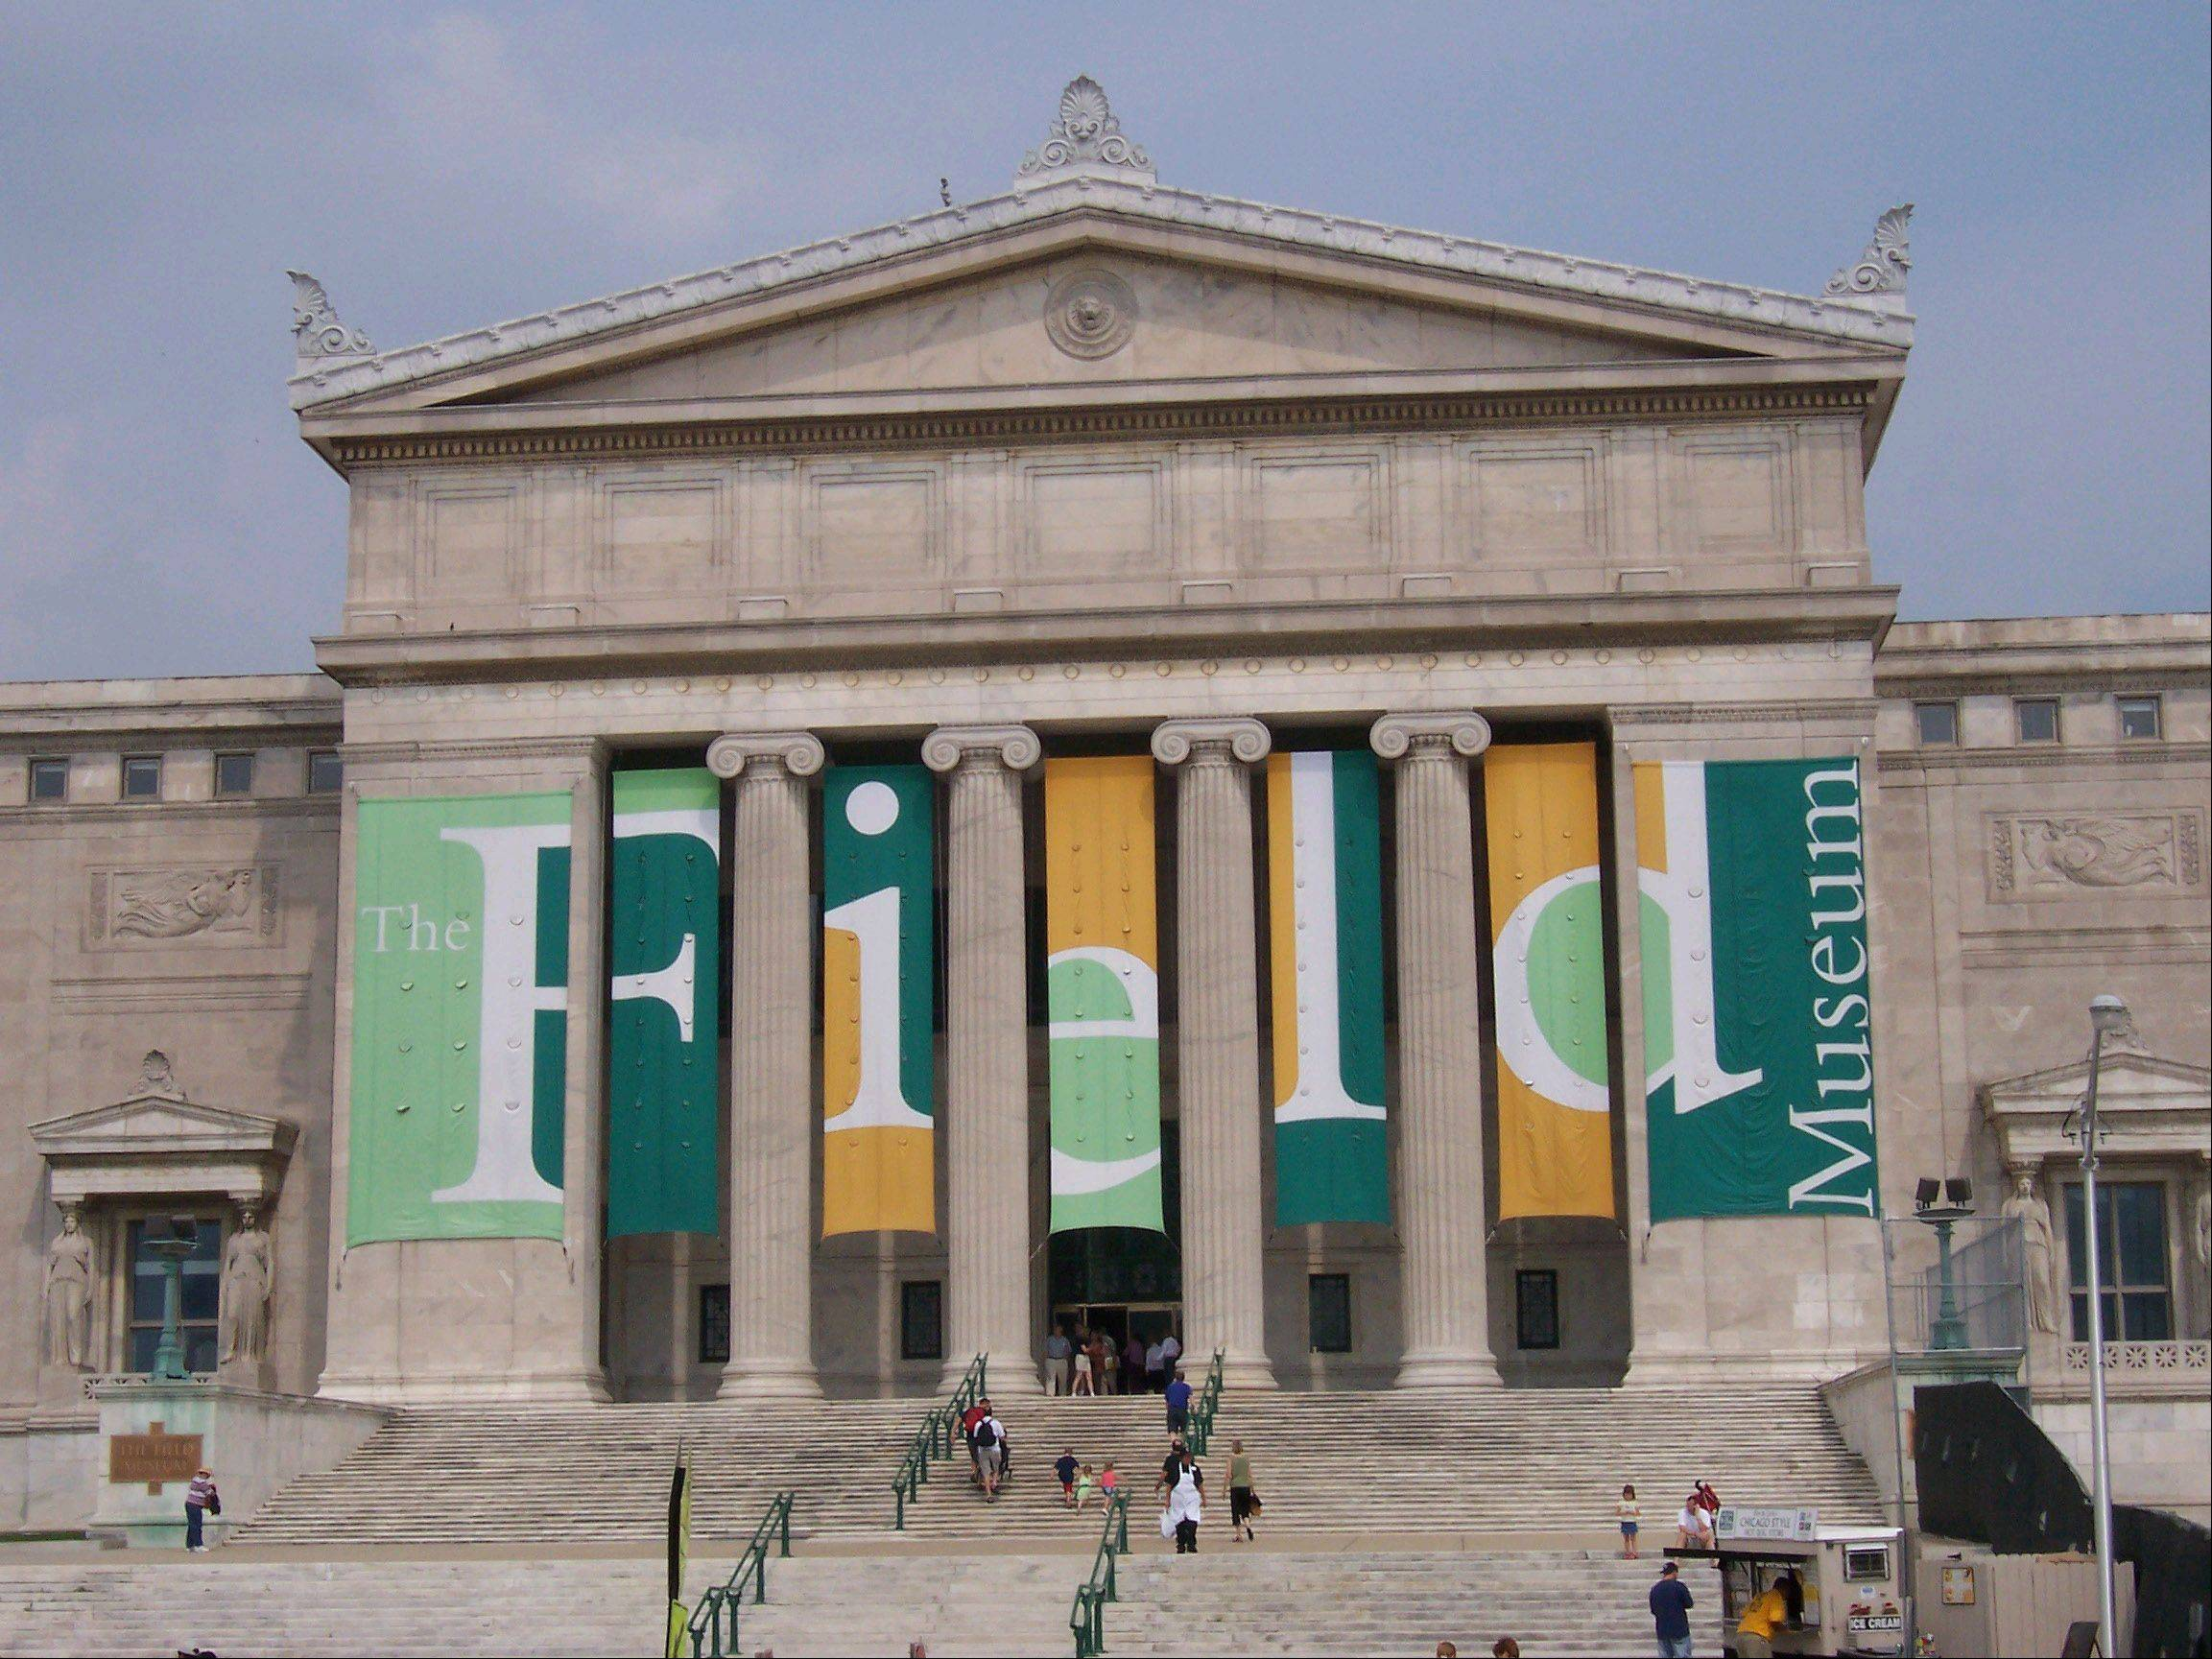 Chicago's Field Museum of Natural History is faced with almost $170 million in debt.